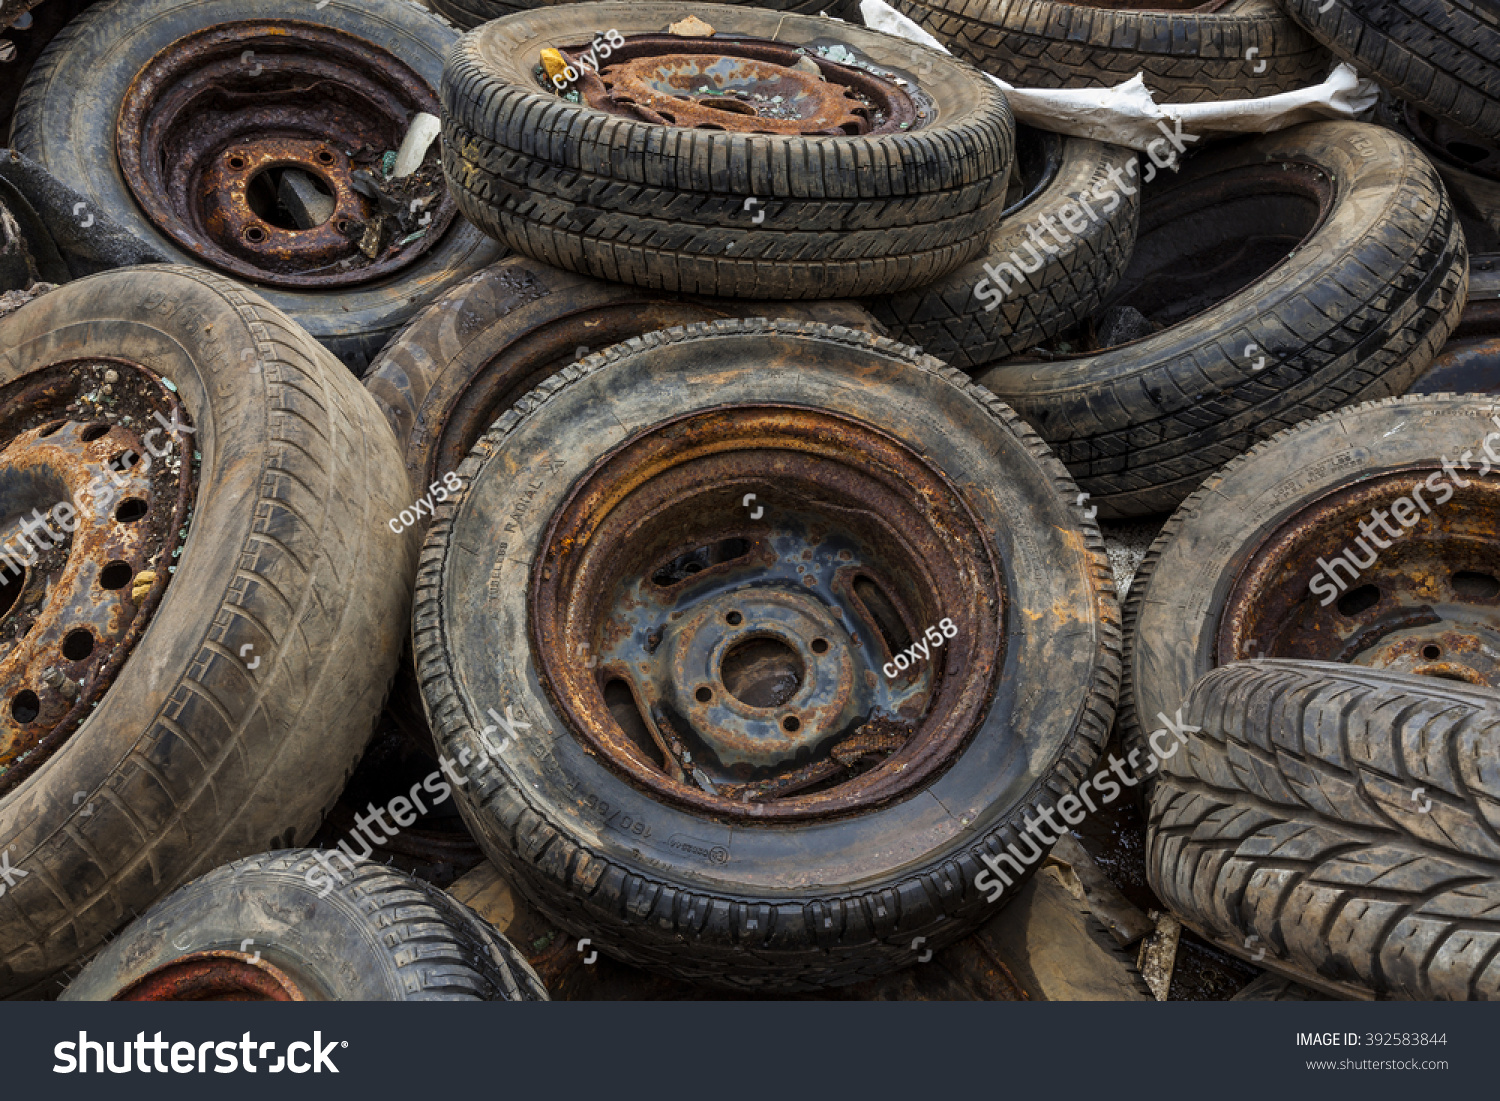 Scrap Auto Car Parts Stacks Old Stock Photo (100% Legal Protection ...